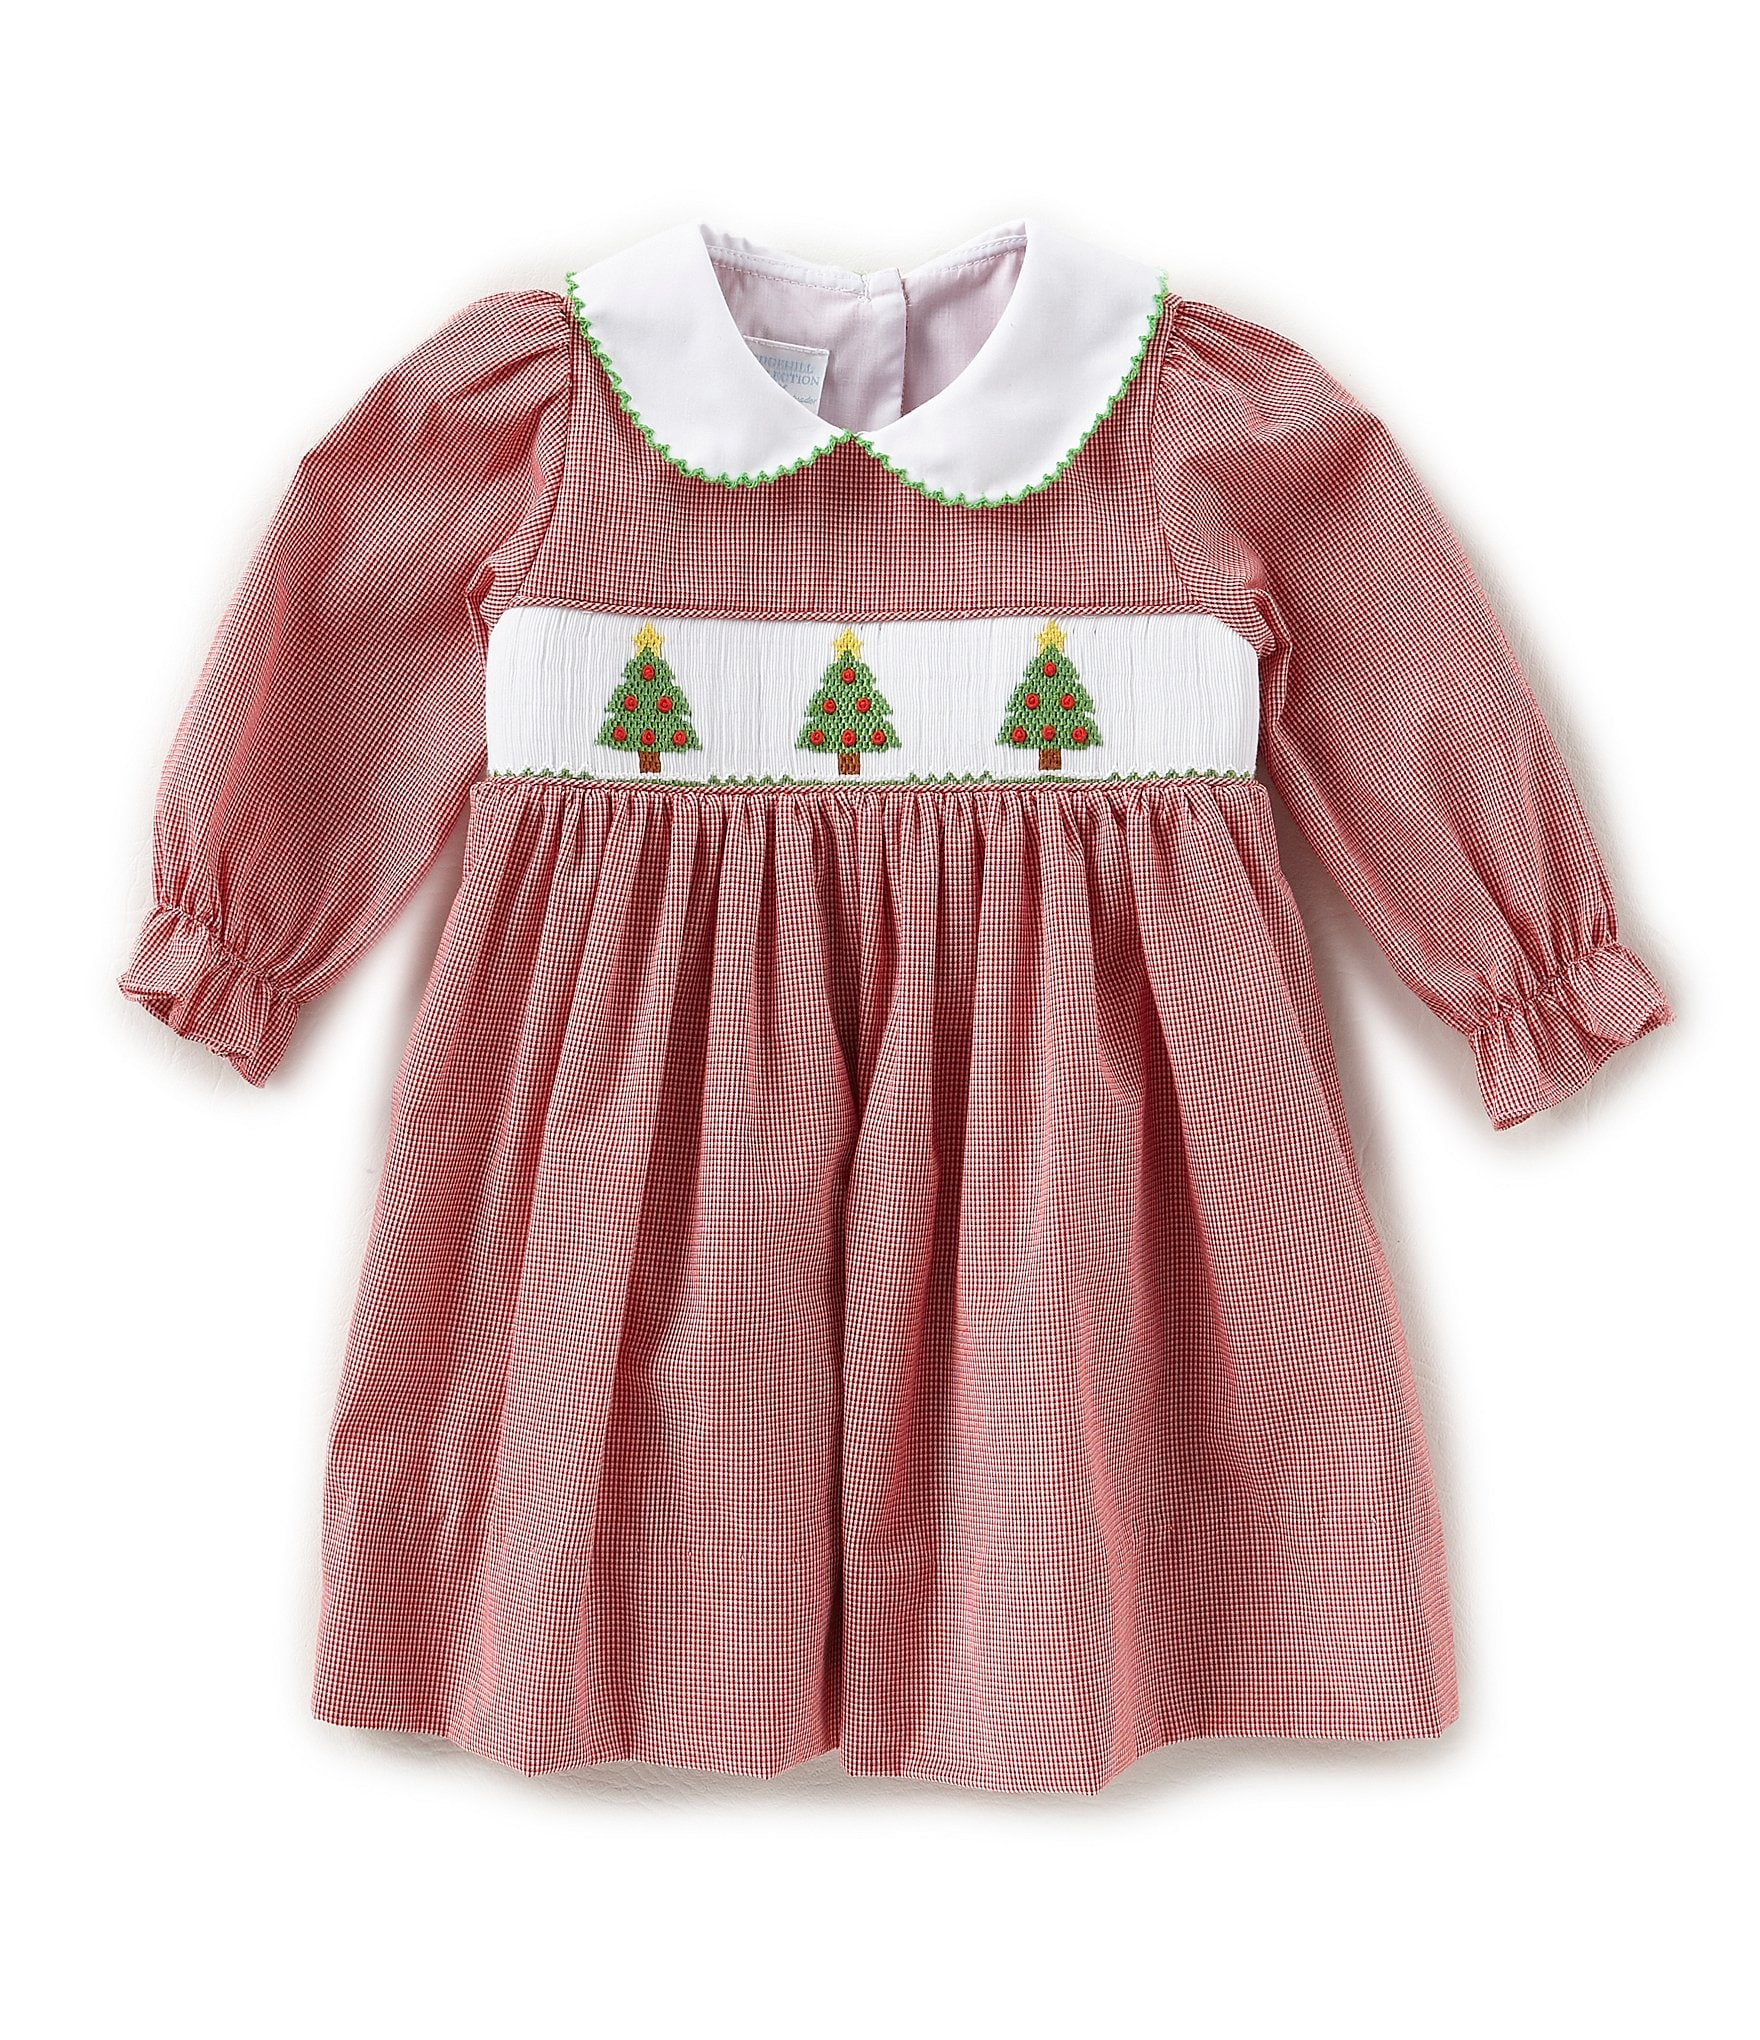 Shop all Shop All Baby Gift Guide for Baby Baby's 1st Christmas Restock Shop Travel Ready with Baby Music & Books Home, Furniture & Appliances Home Improvement & Patio Clothing, Shoes & Accessories Baby & Toddler Toys & Video Games Food, Household & Pets Pharmacy, Health Office Supplies Office Electronics Walmart for Business. Video Games.